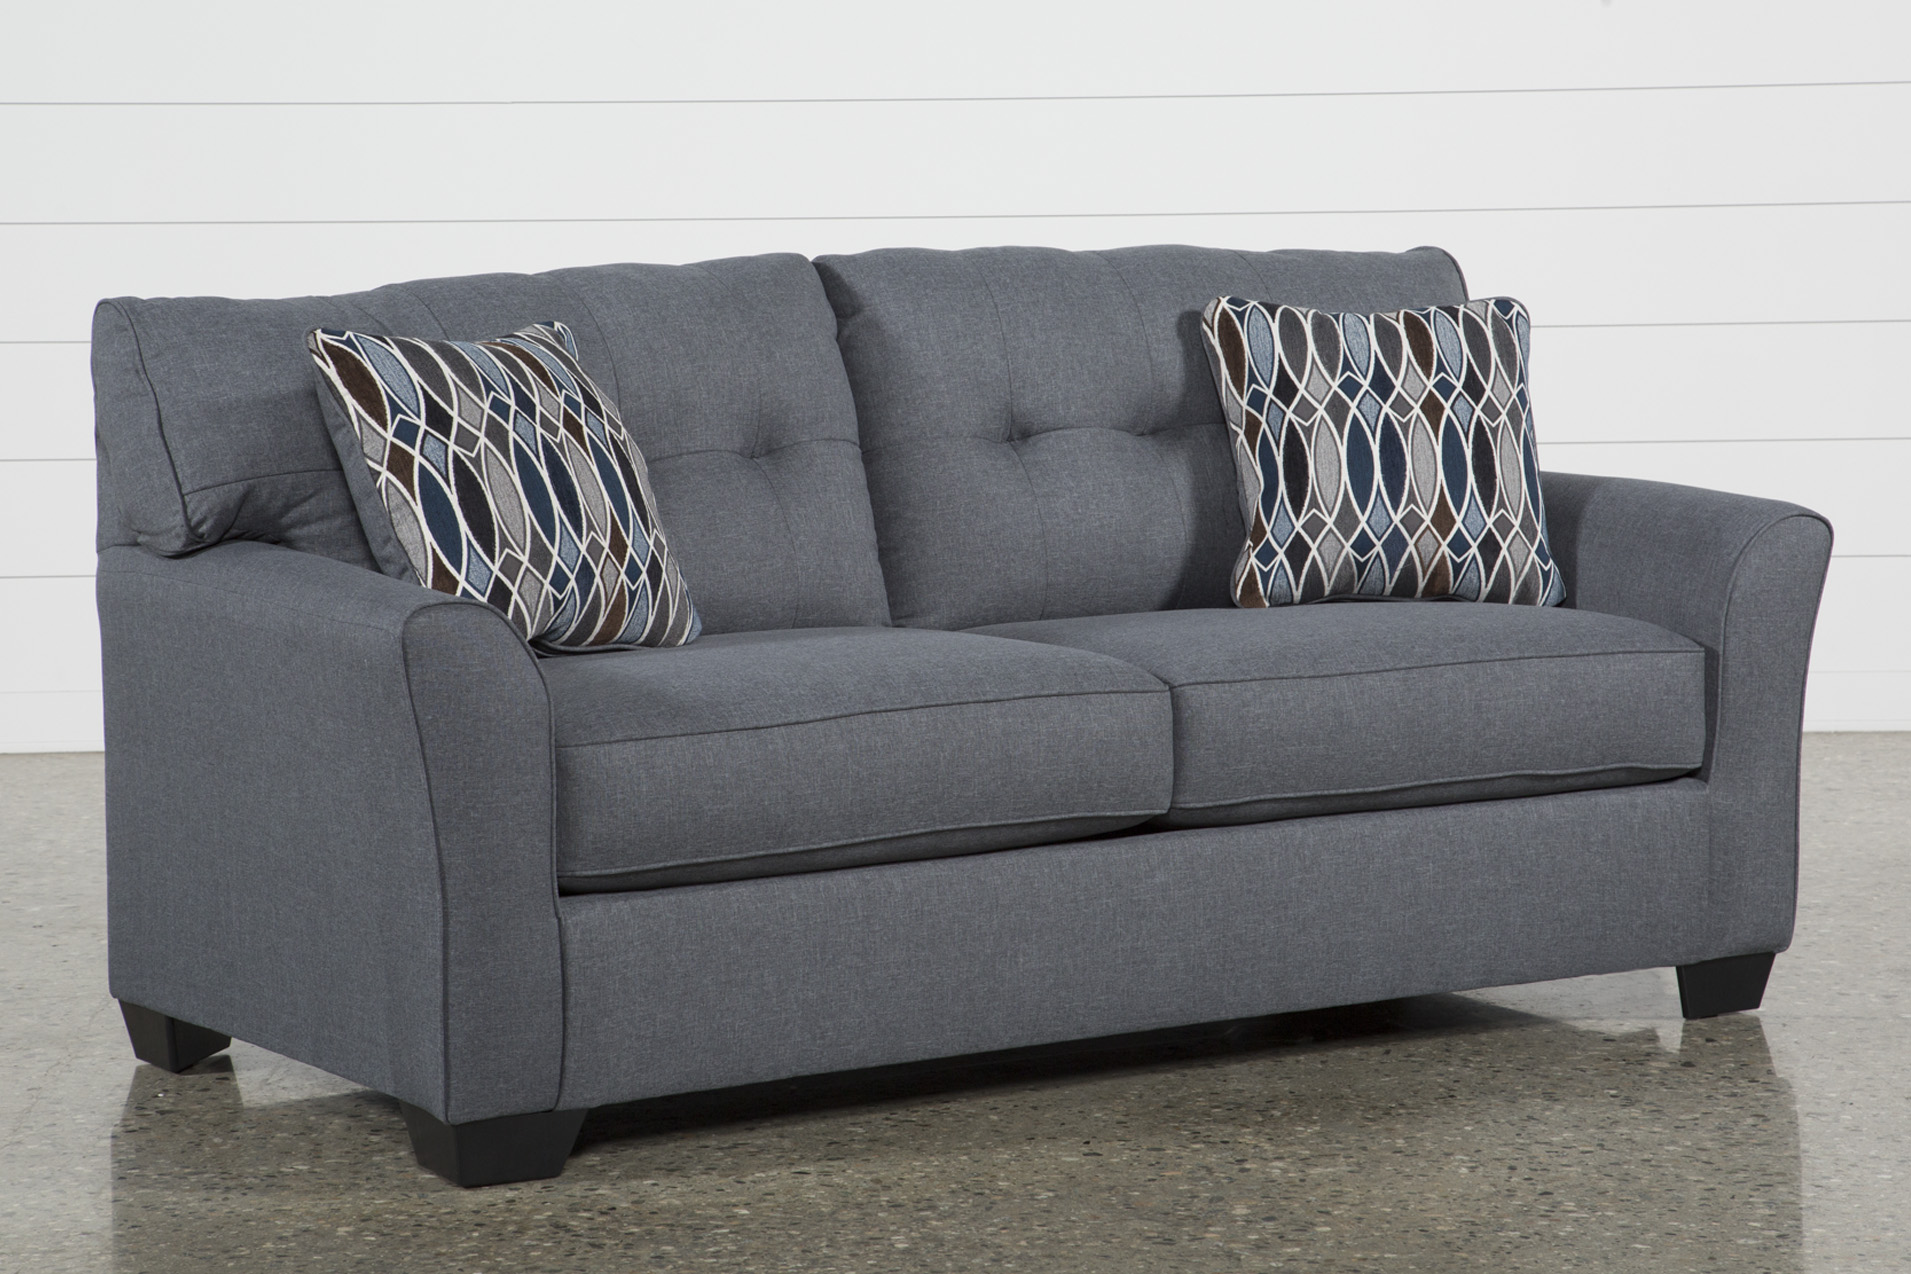 Beau Added To Cart. Chilkoot Gunmetal Full Sofa Sleeper ...